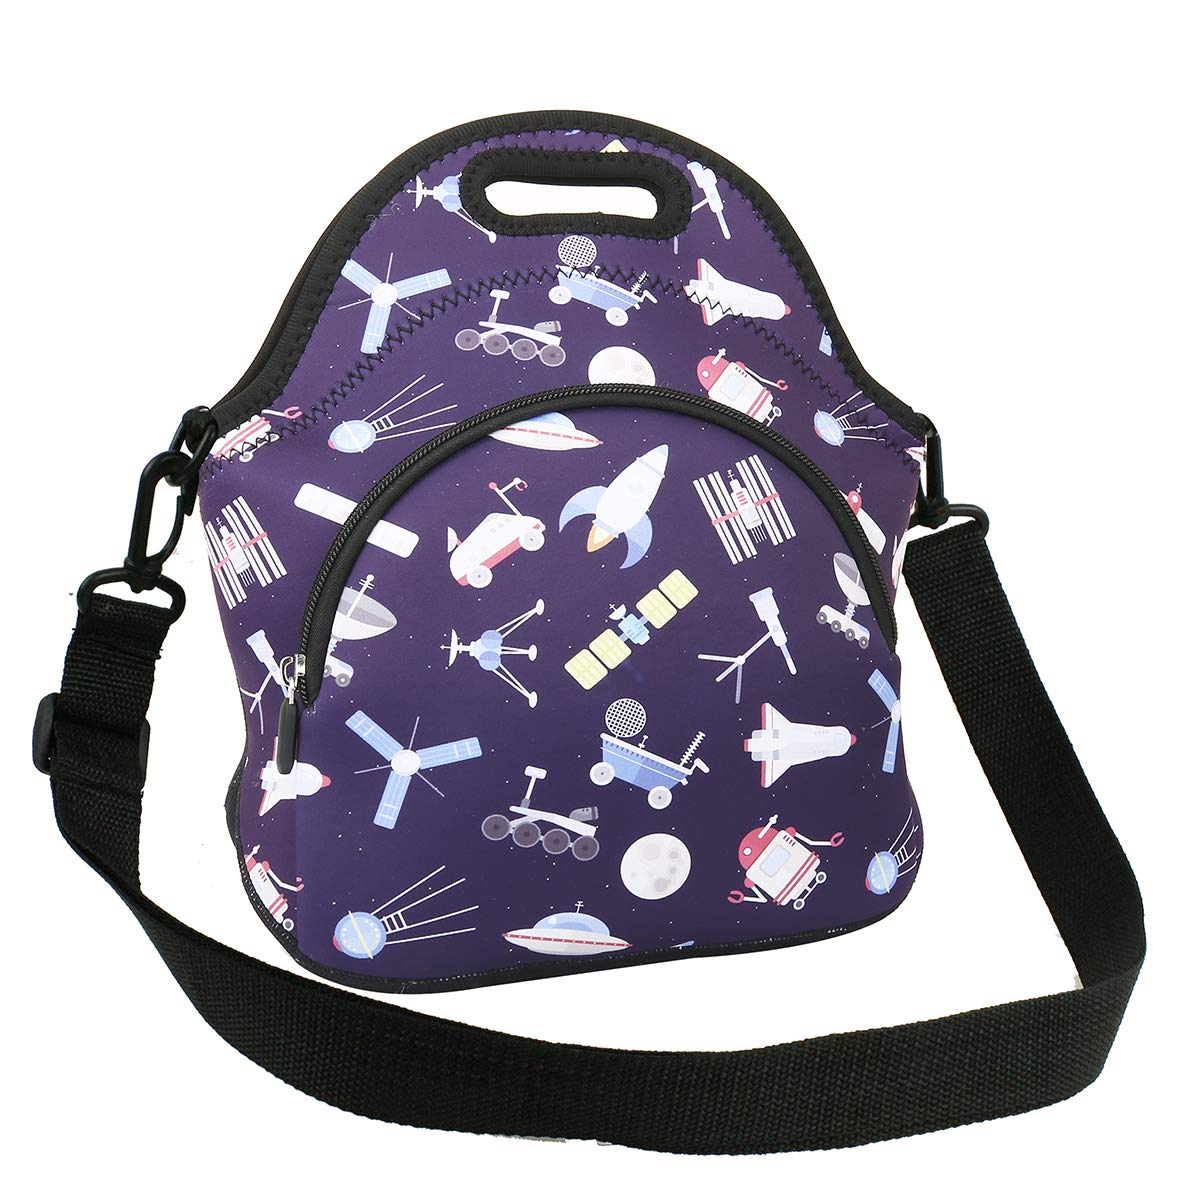 Neoprene Lunch Bag Reusable Black Tote Bag Cool Astronaut Insulated Lunch Box Handbag Fordable